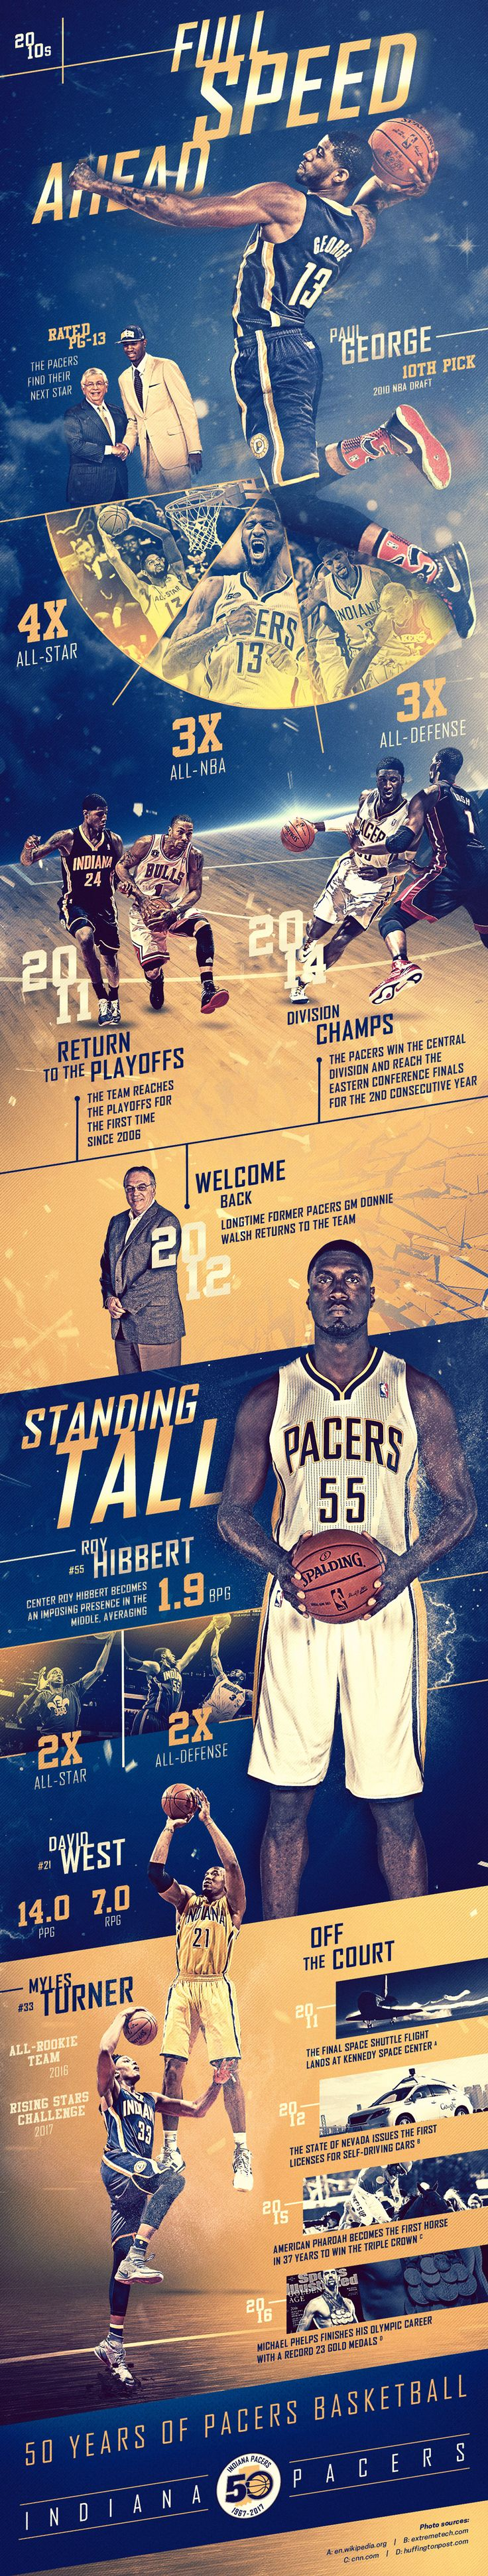 42 best Indiana Pacers images on Pinterest